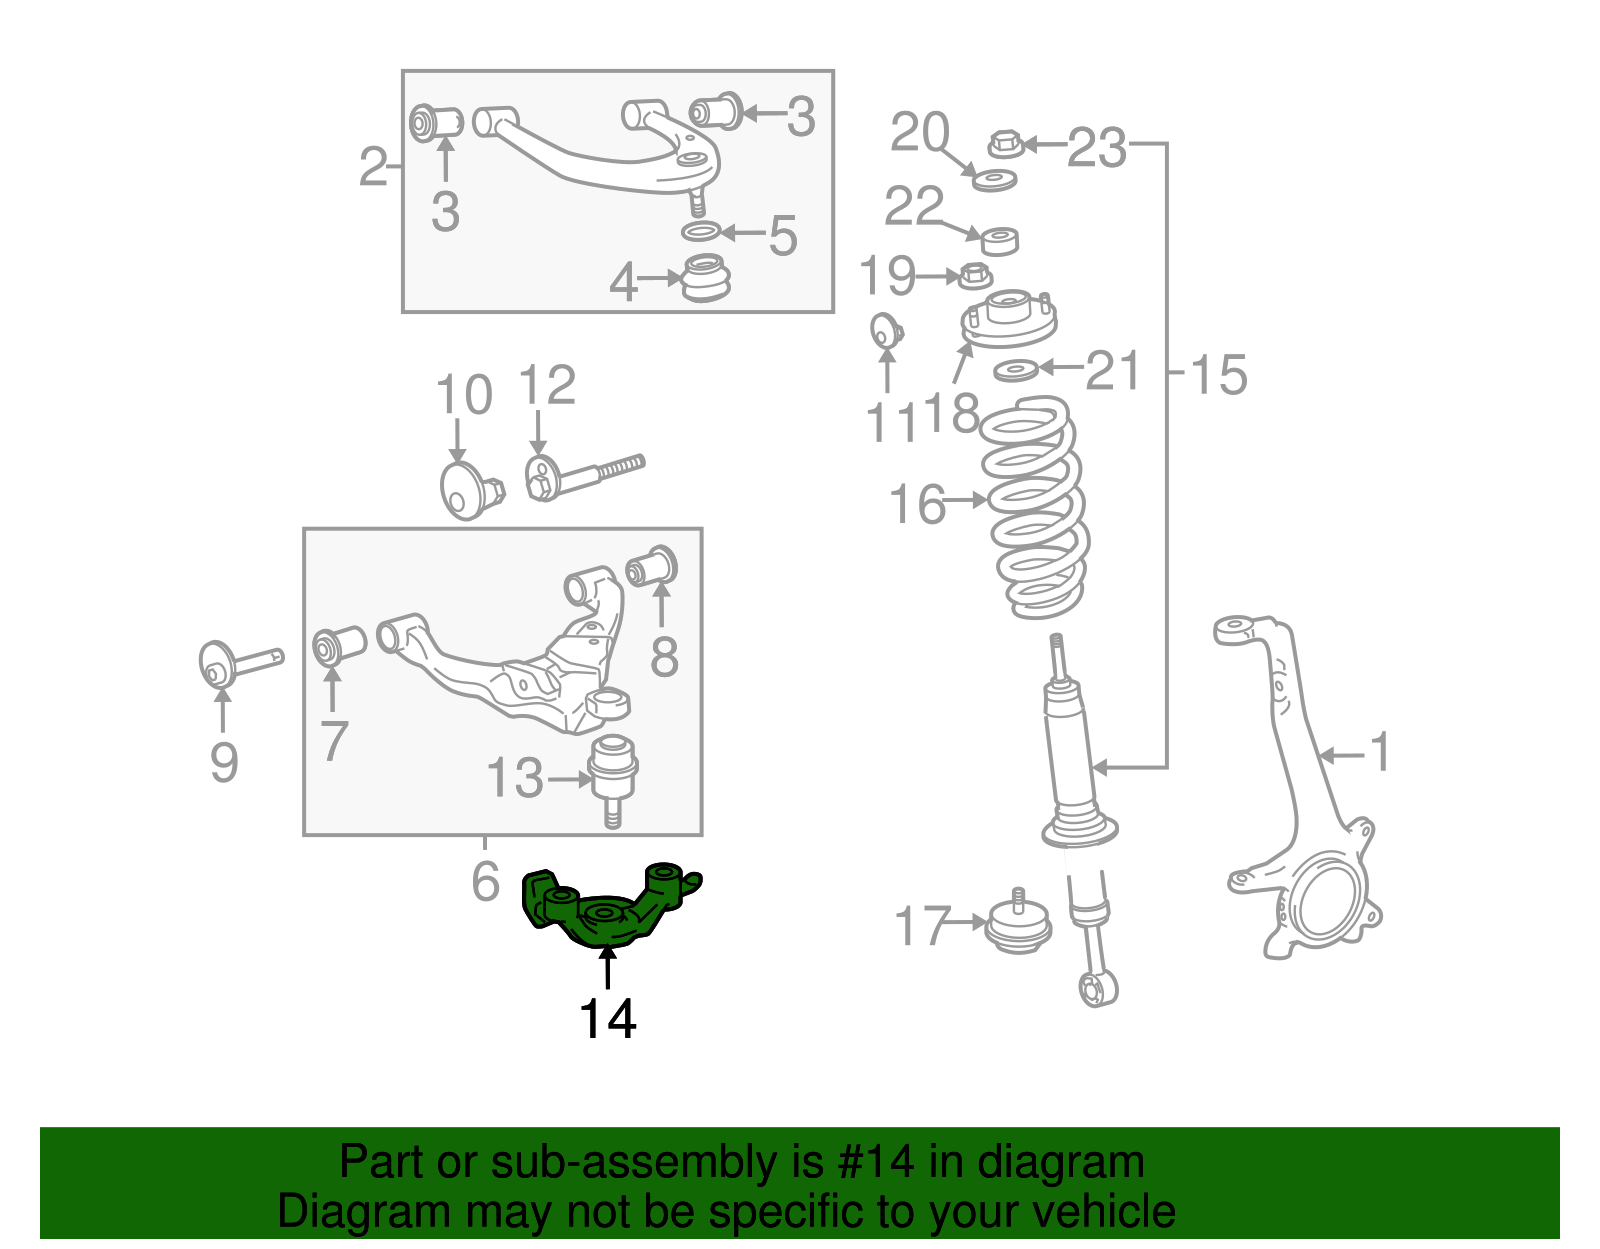 TOYOTA OEM 05-18 Tacoma Lower Control Arm-Front-Attachment Kit 4862504050